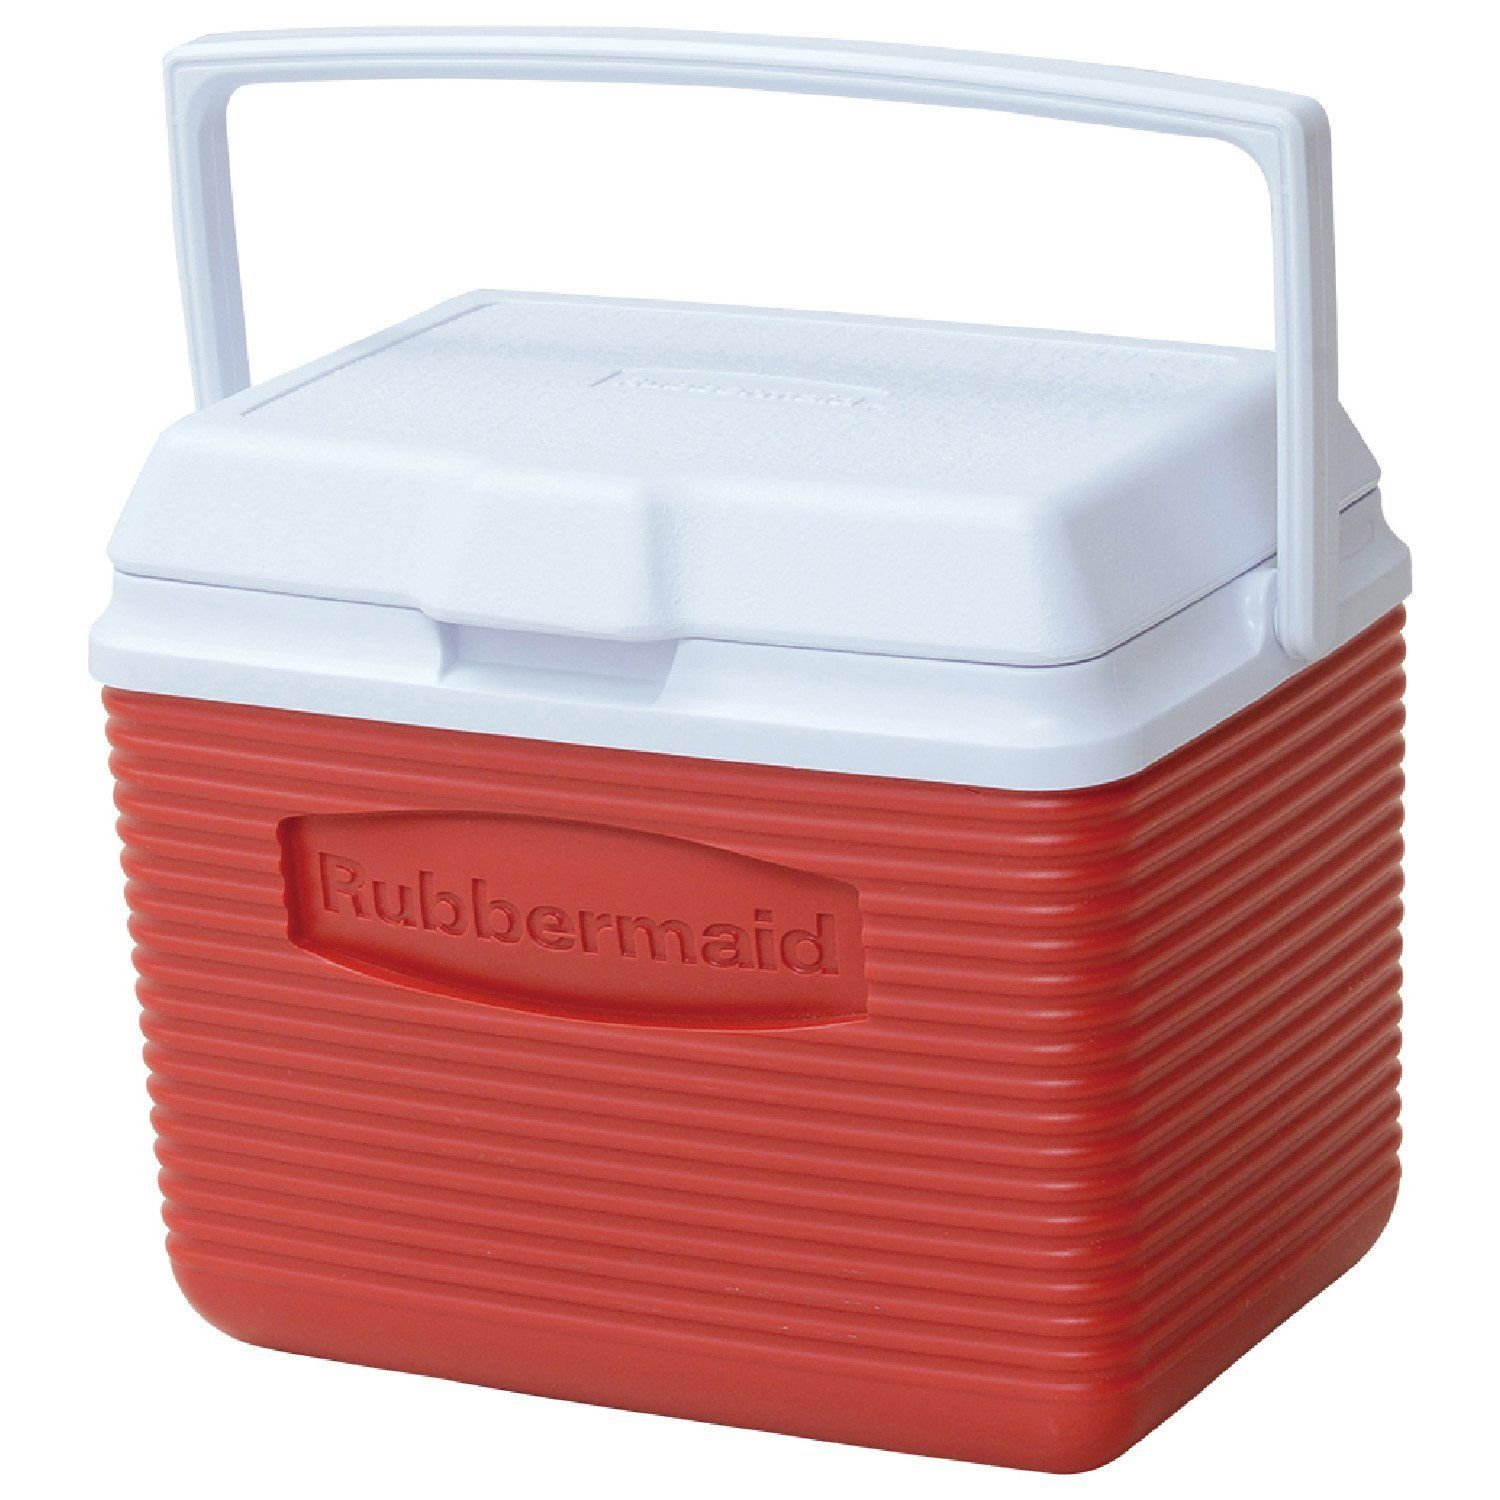 Rubbermaid 10 Quart Personal Ice Chest Cooler Only 9 97 Lowest Price Ice Chest Cooler Rubbermaid Cooler Rubbermaid